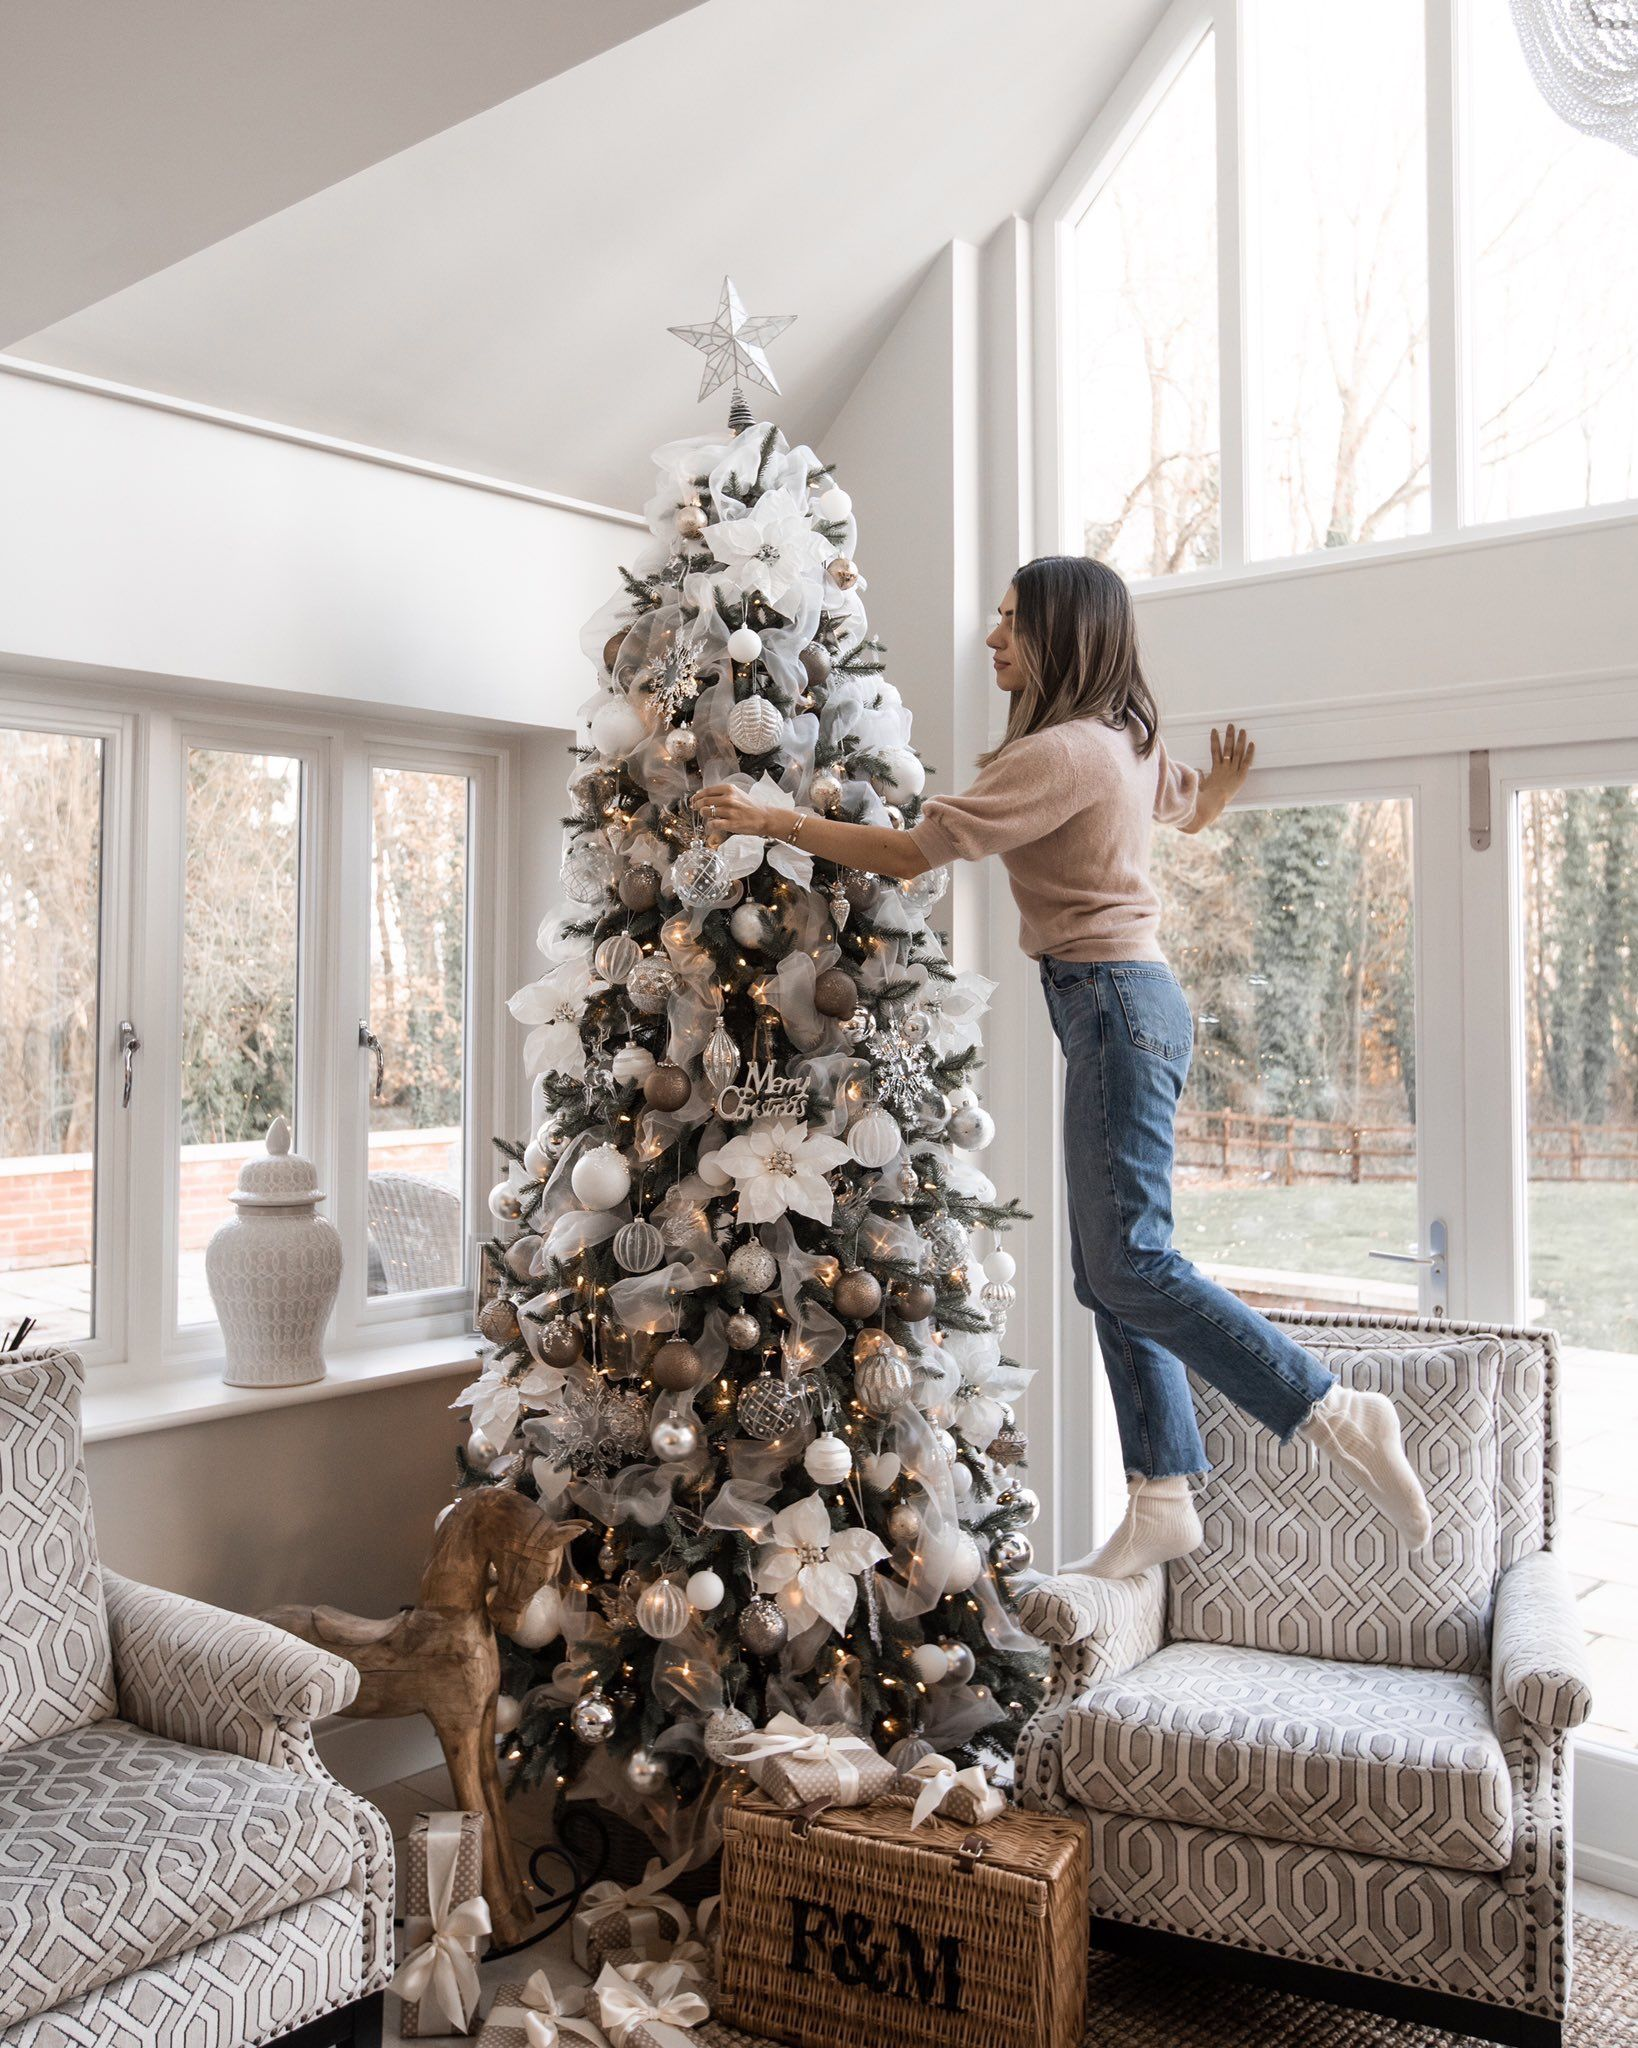 Arbre De Noel Maison pinmaria vieira on home | chic christmas decor, holiday